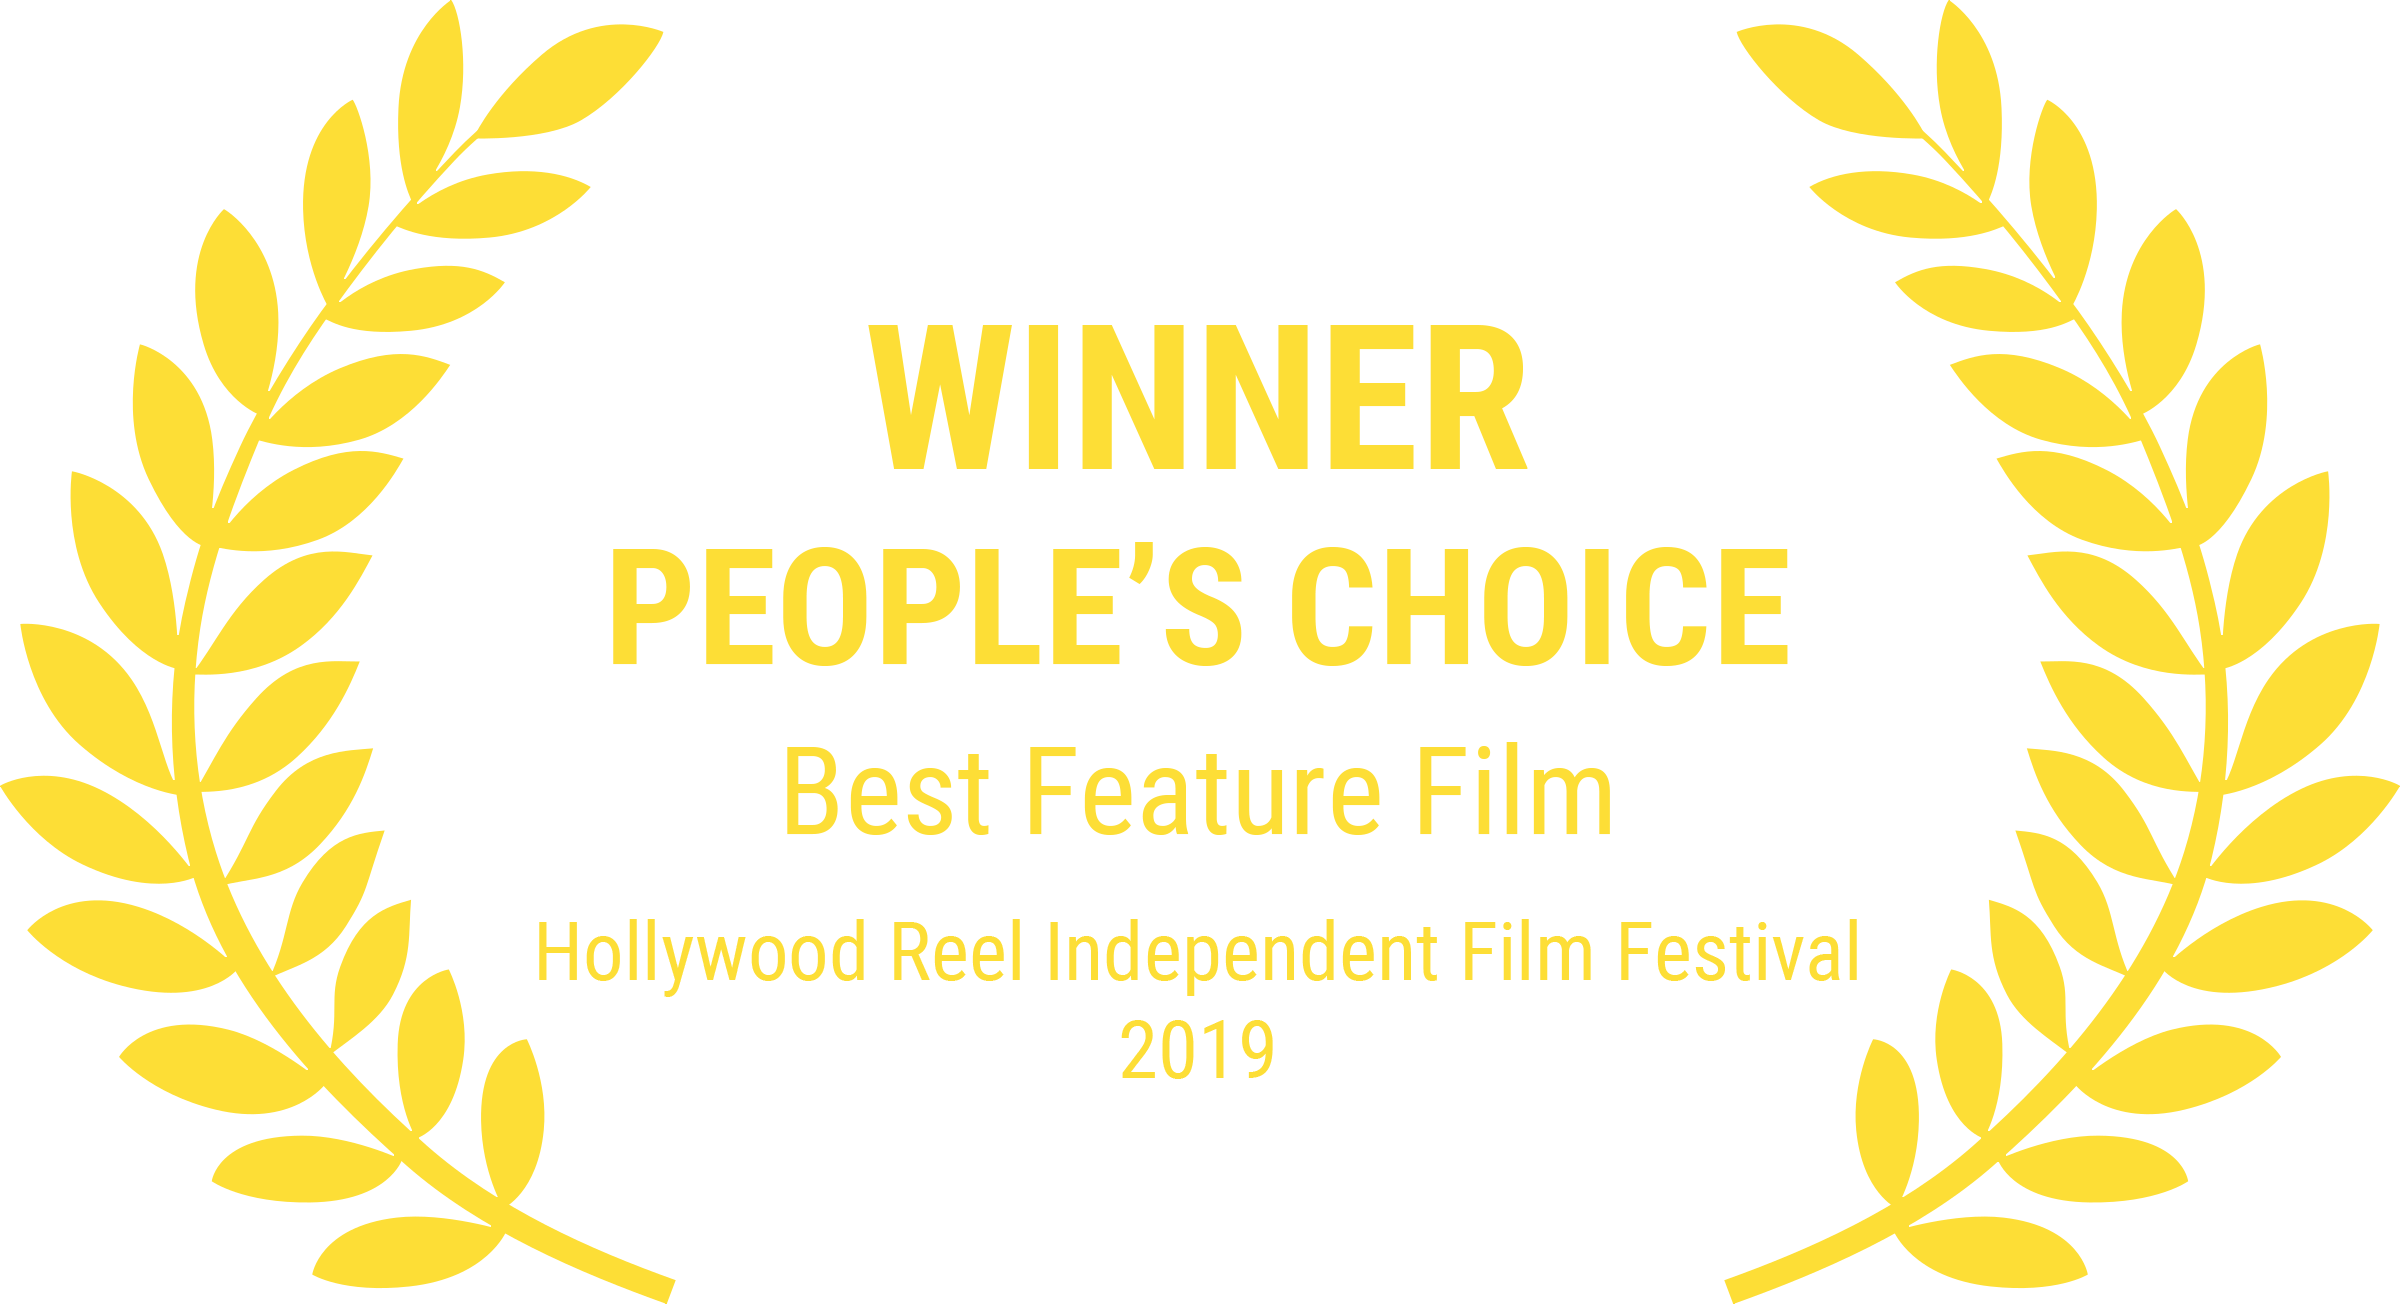 Low Low - People's Choice Award - Hollywood Reel Independent Film Festival 2019